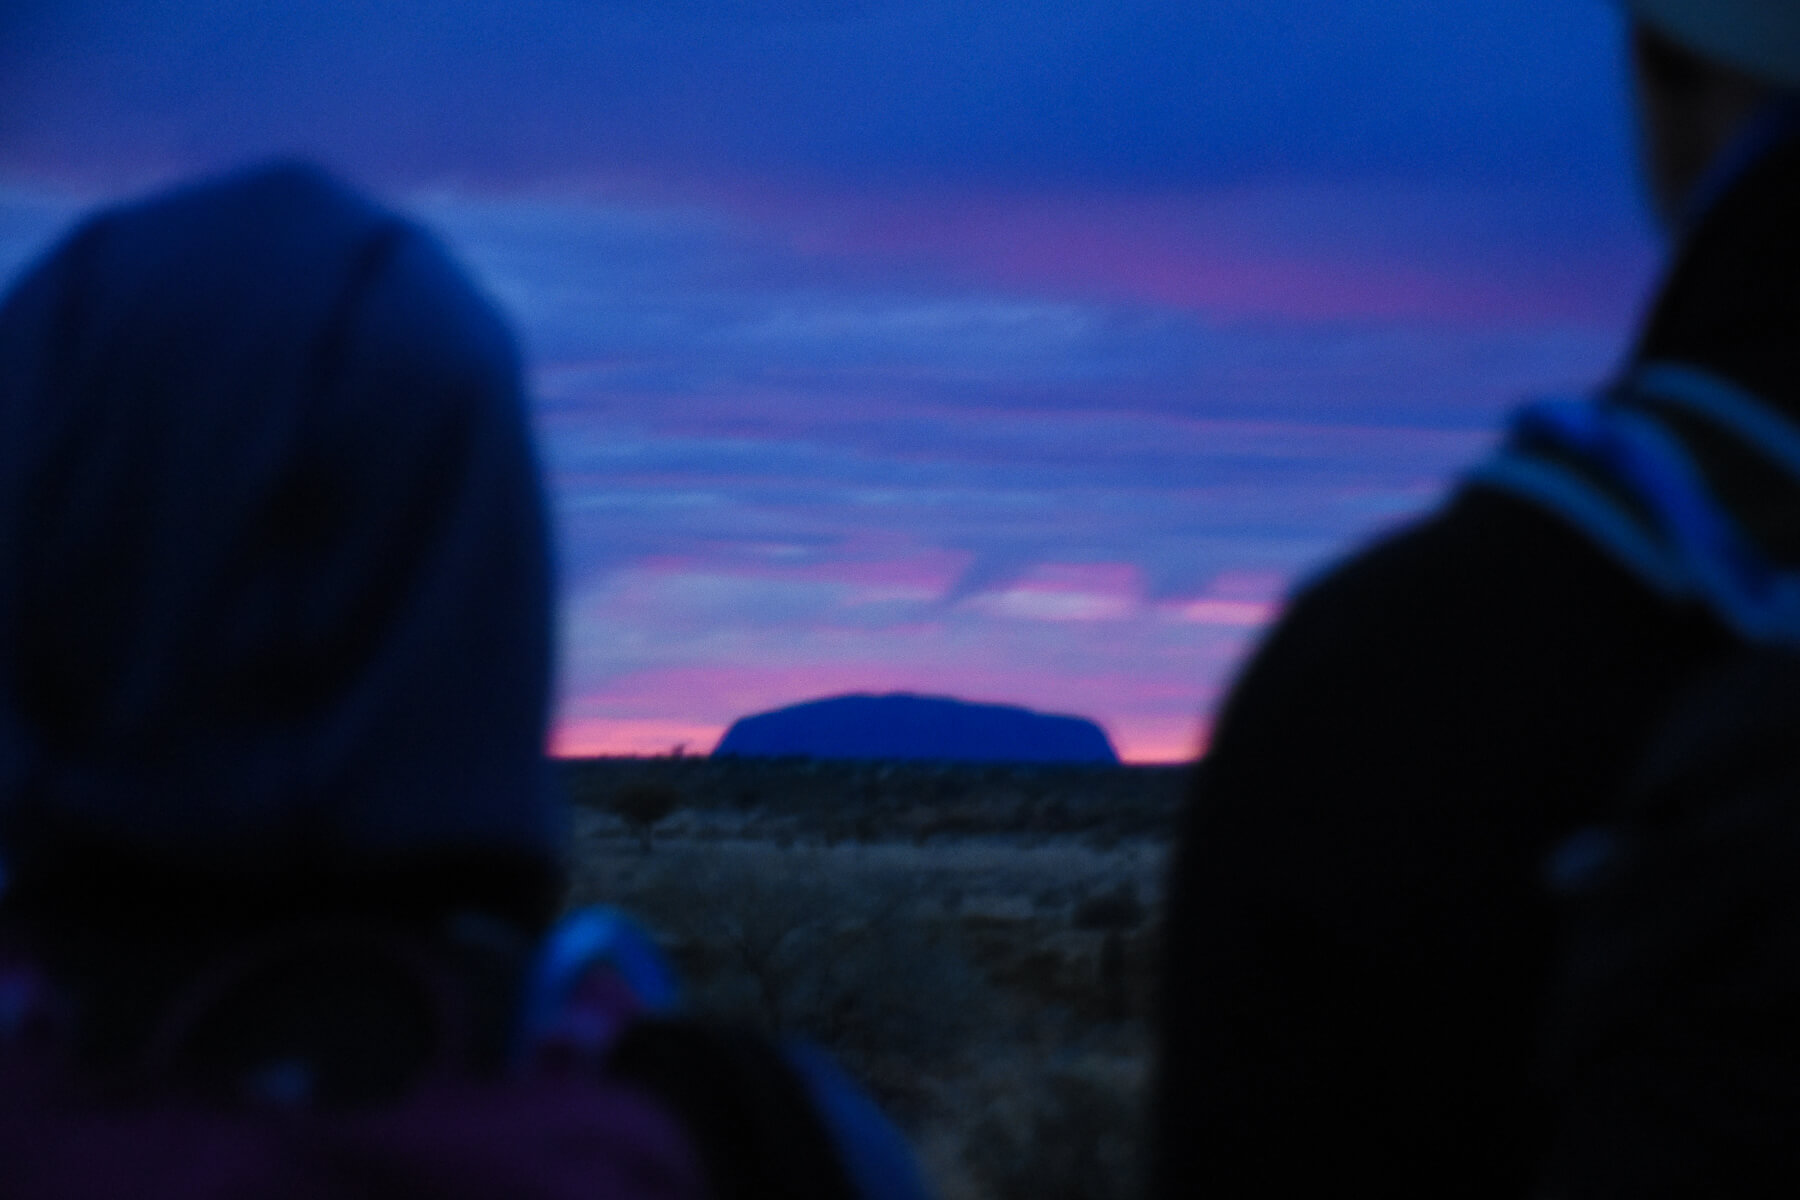 Bright Blue sunrise behind Uluru - camera pointing between 2 out of focus bodies